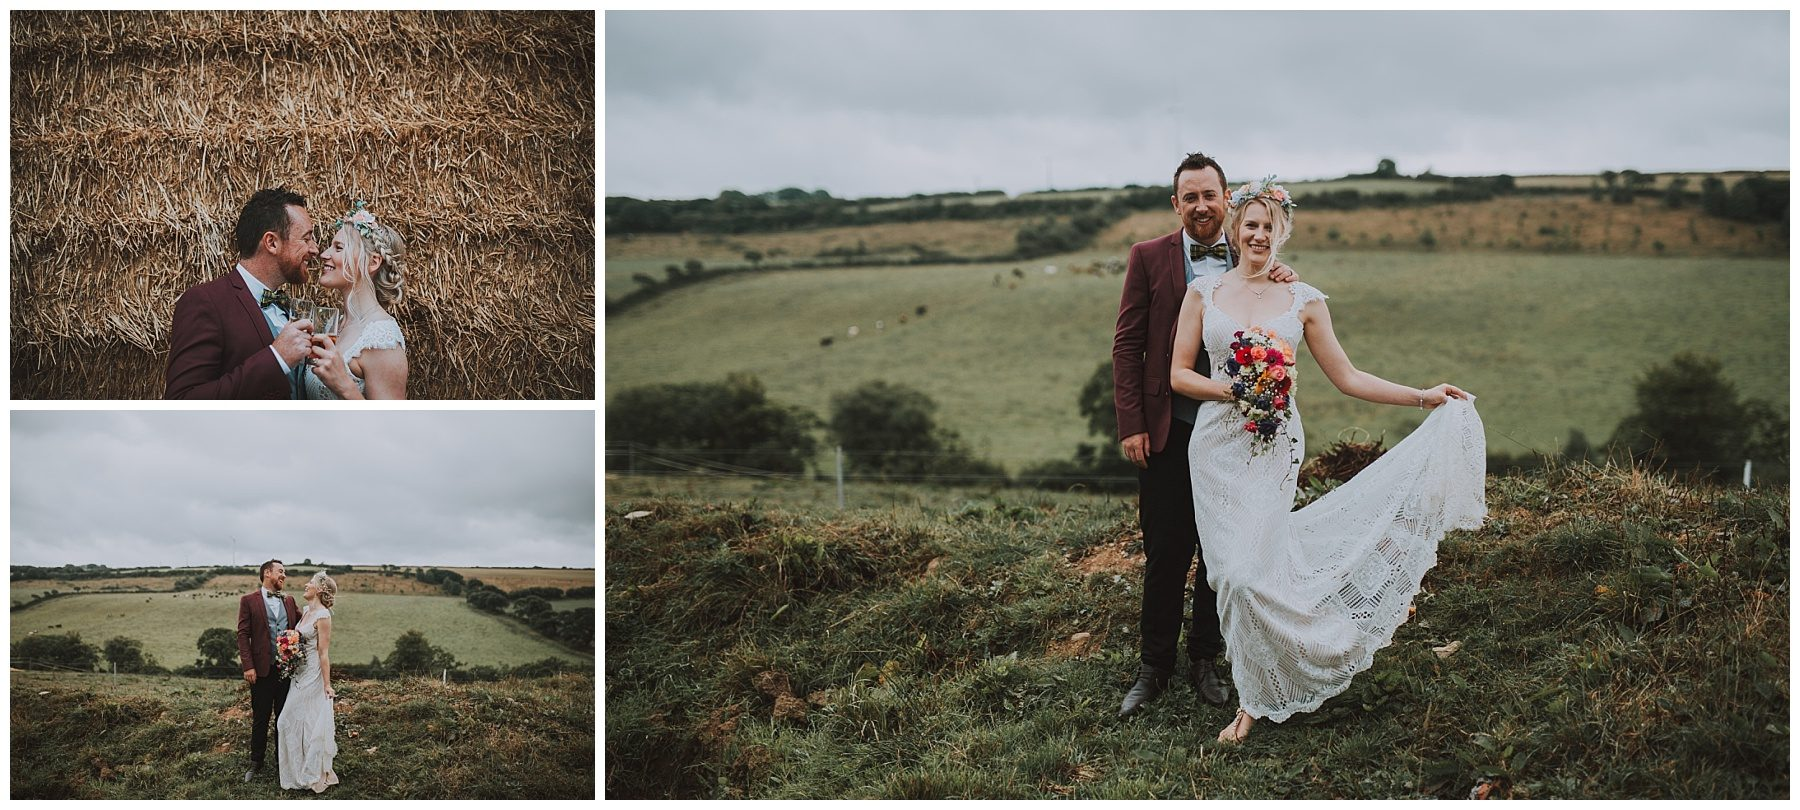 Wedding photos Cornwall Rustic farm wedding